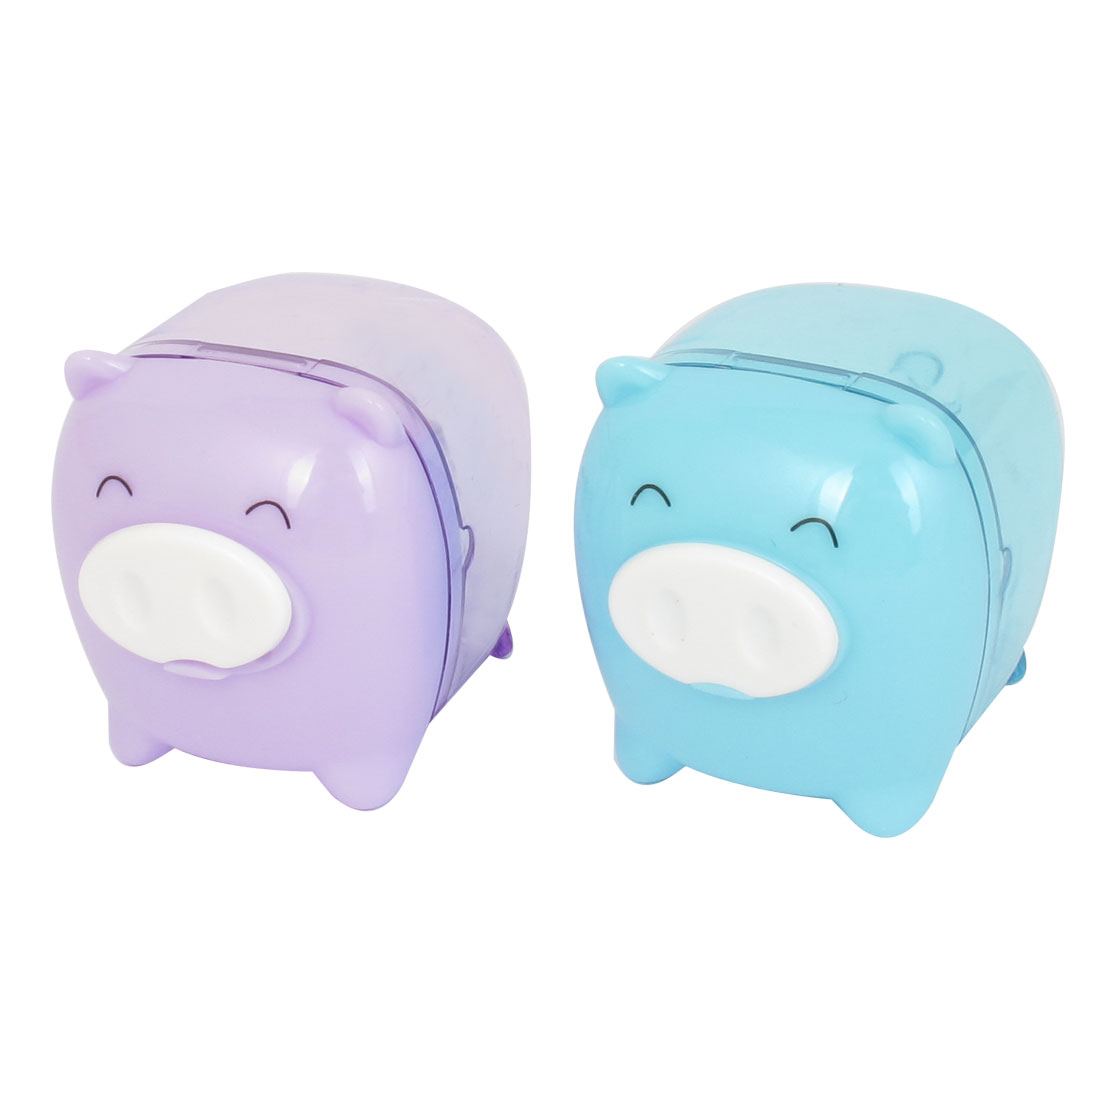 Students Stationery Pig Style Plastic Case Pencil Sharpener Purple Blue 2pcs